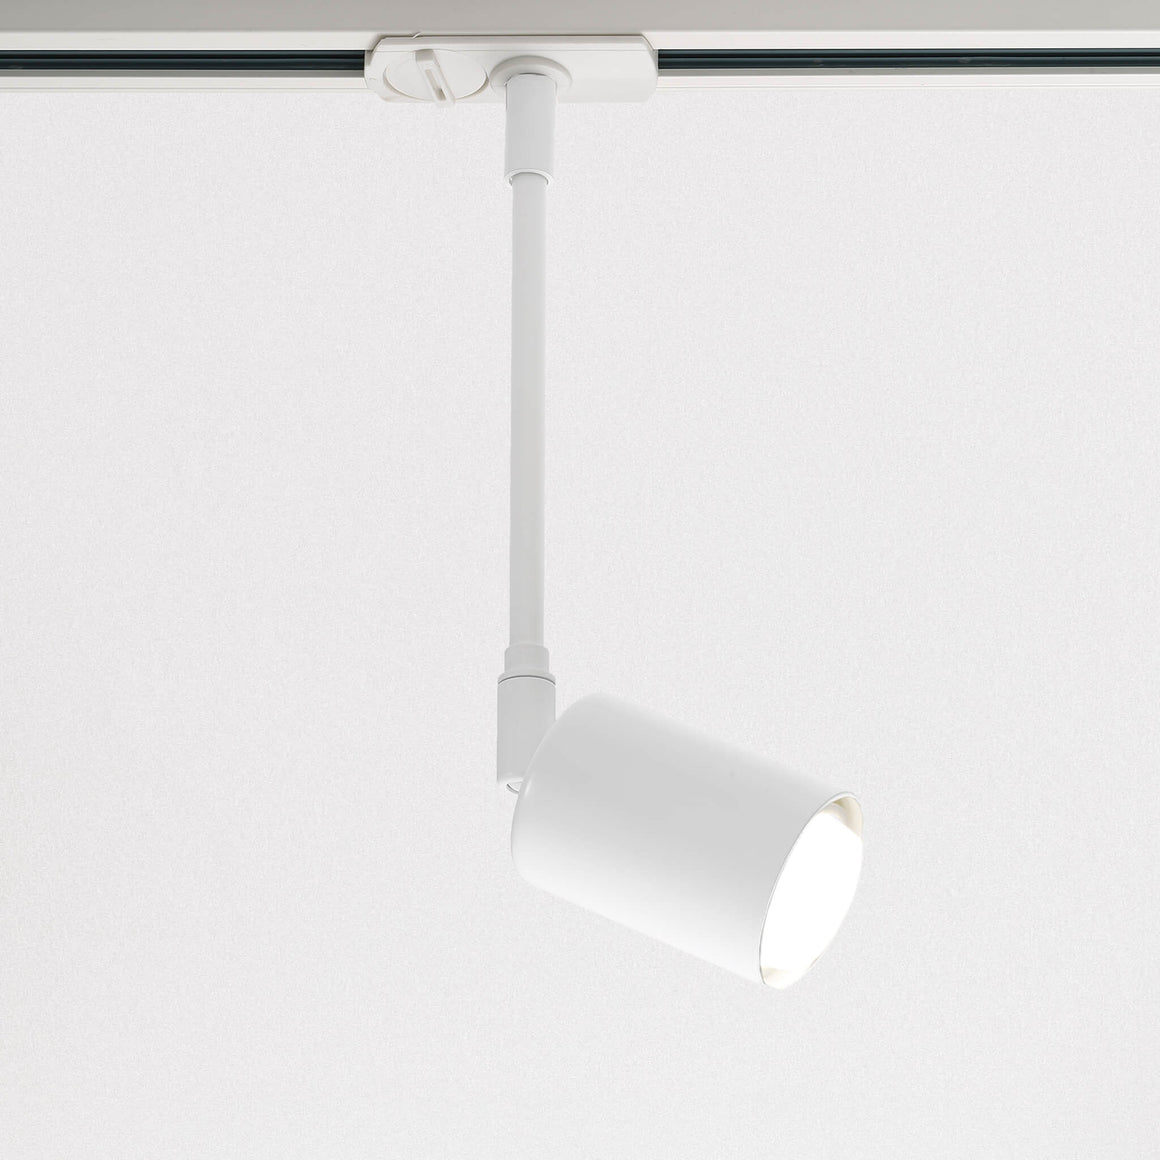 Nordlux Explore Link Track Spotlight - White - Ceiling Lights - Lampsy